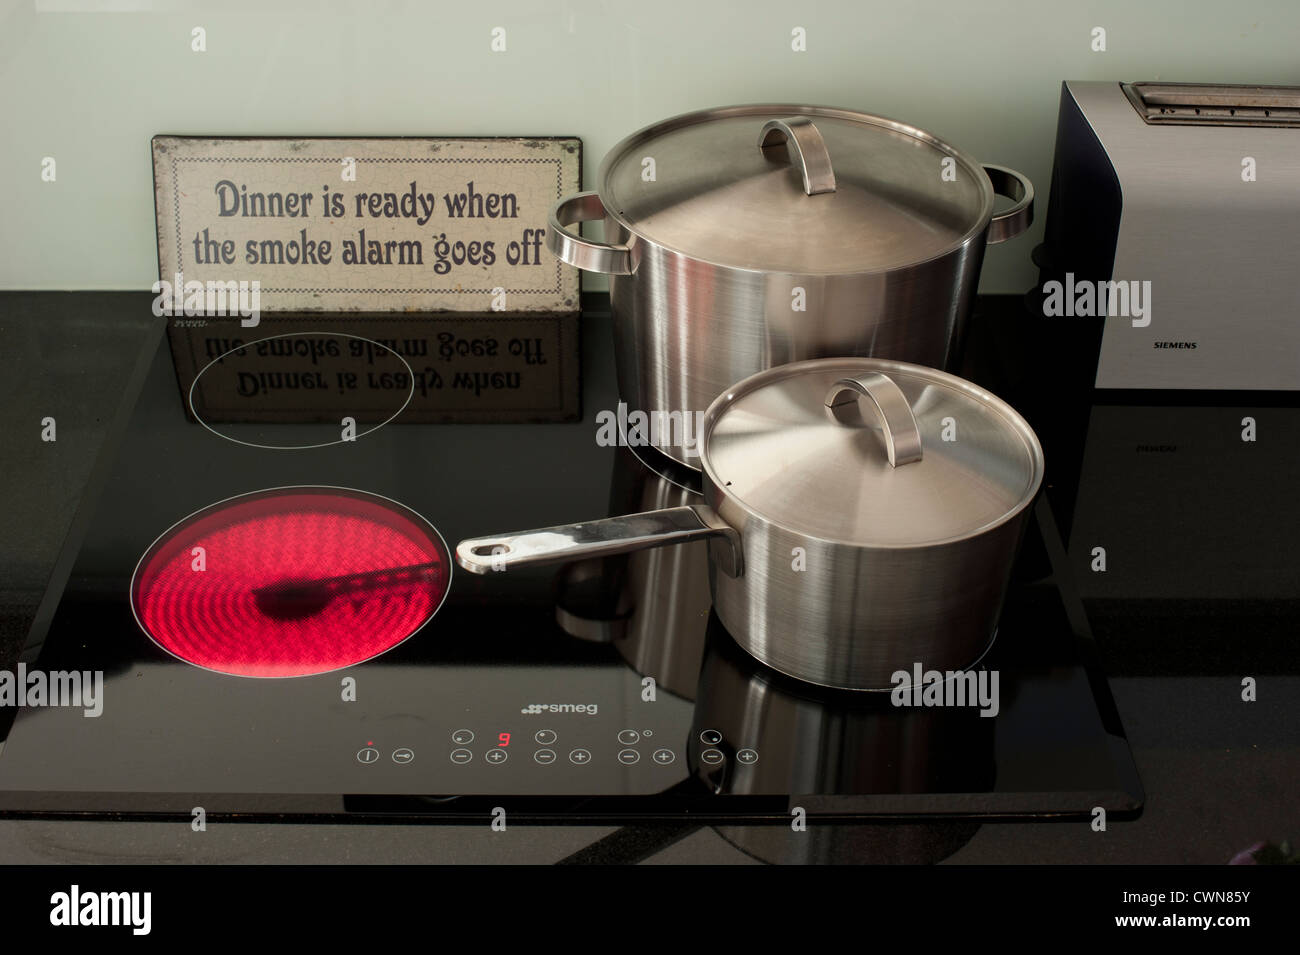 Stainless steel pans next to a burning ceramic cooking stove - Stock Image